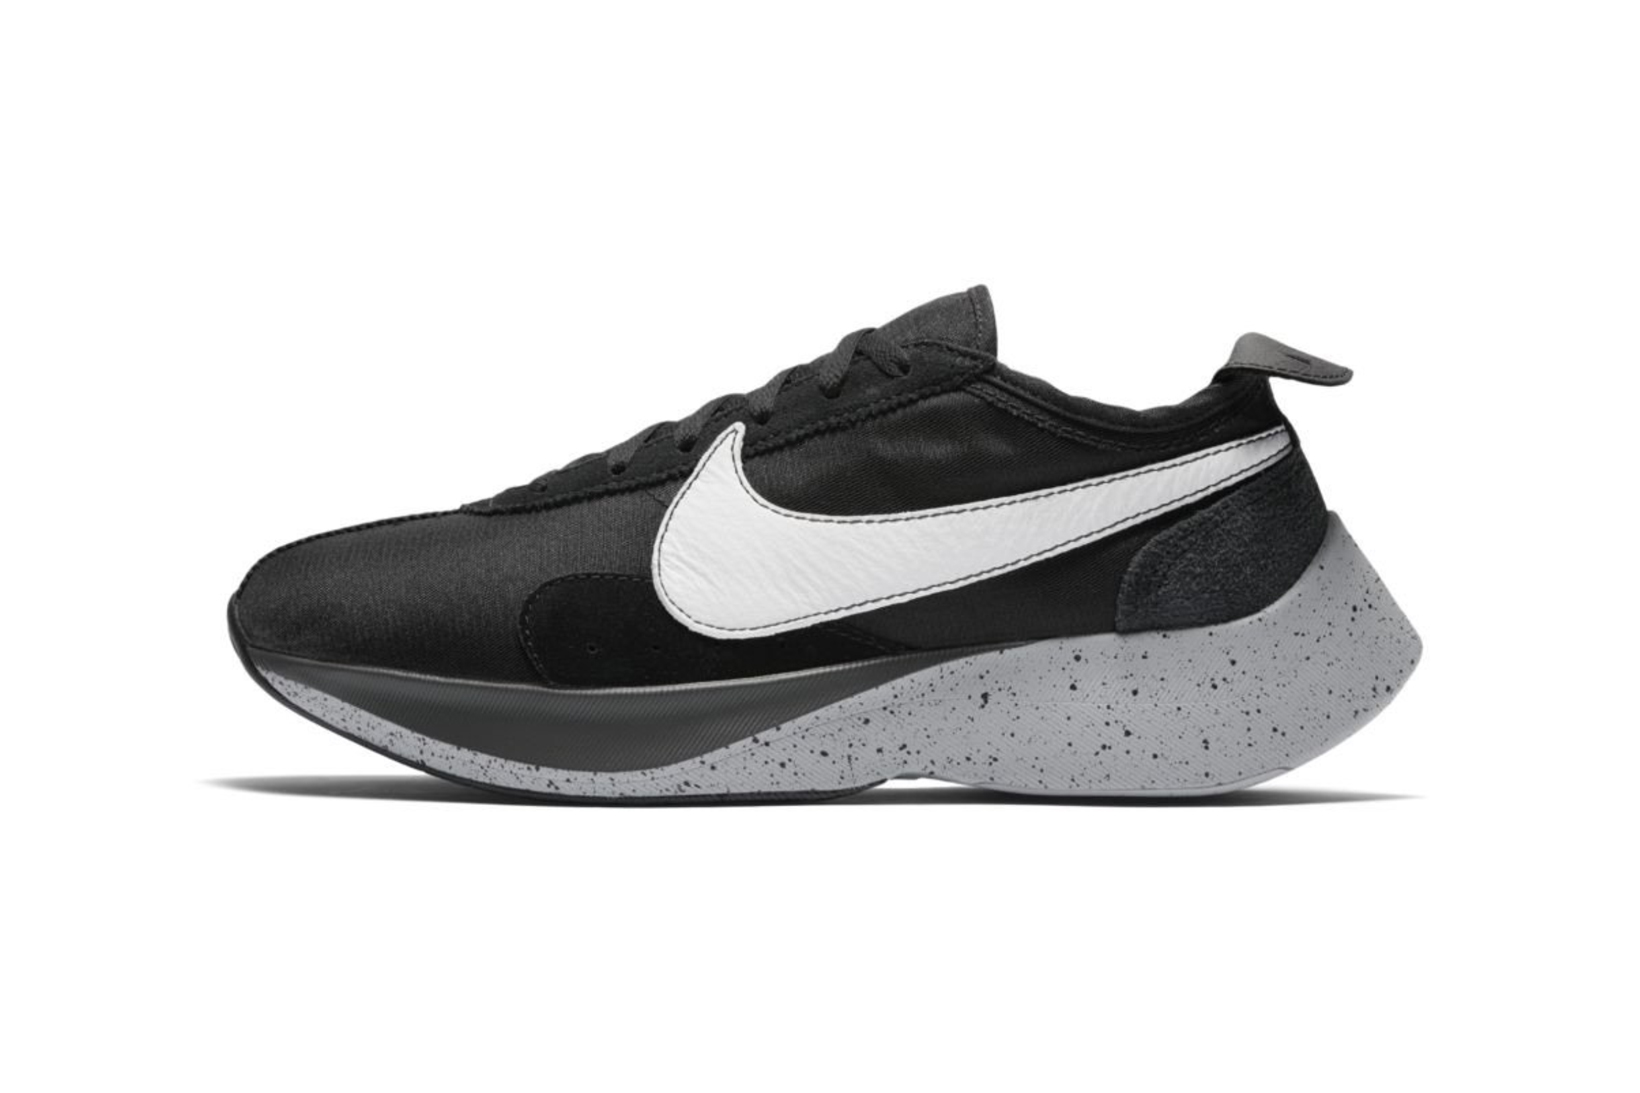 nike moon racer running shoes sneakers footwear